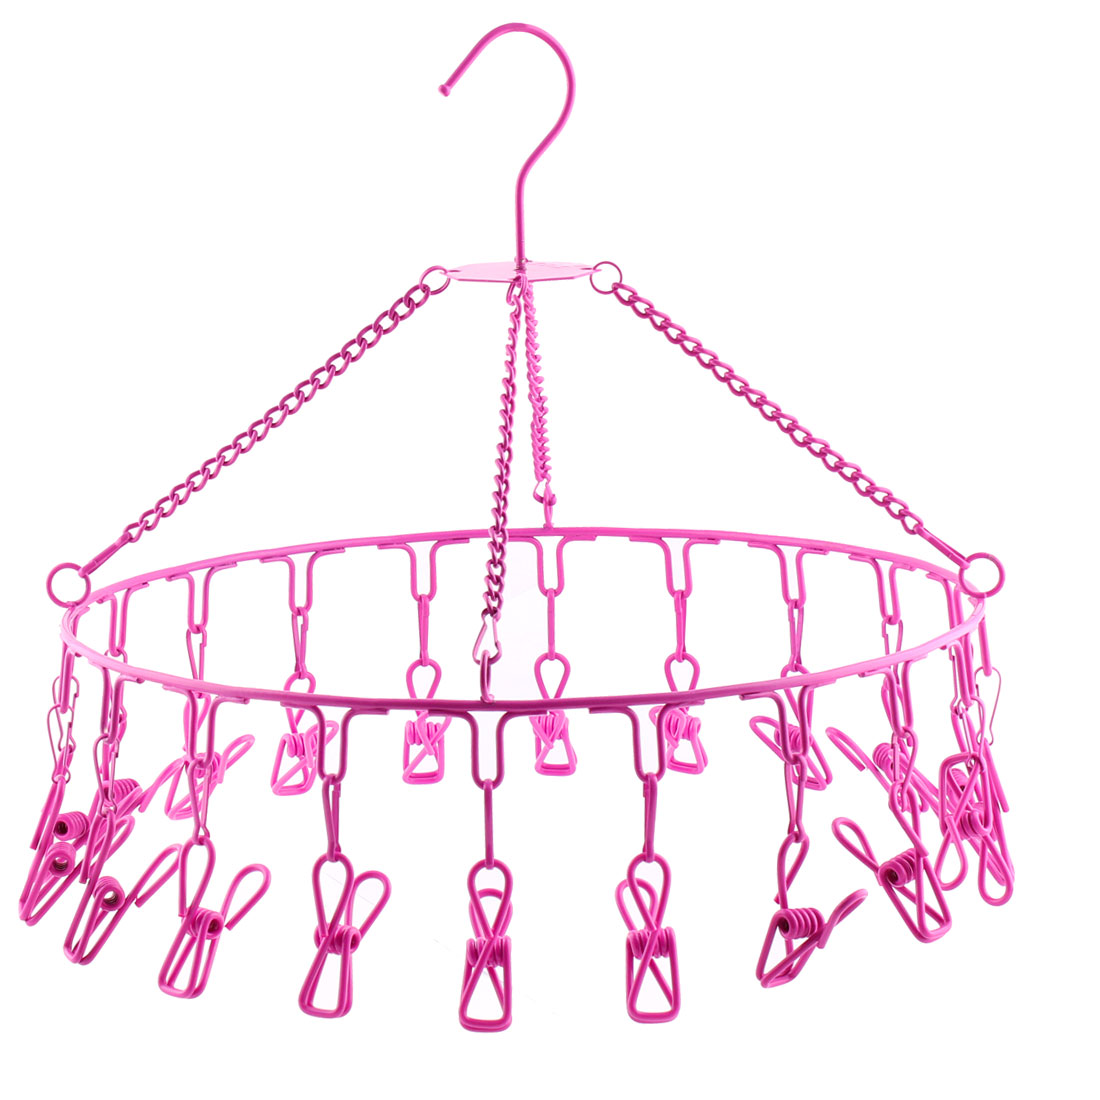 Home Plastic Coat Stainless Steel 20 Pegs Laundry Clothespins Clothes Hanger Fuchsia